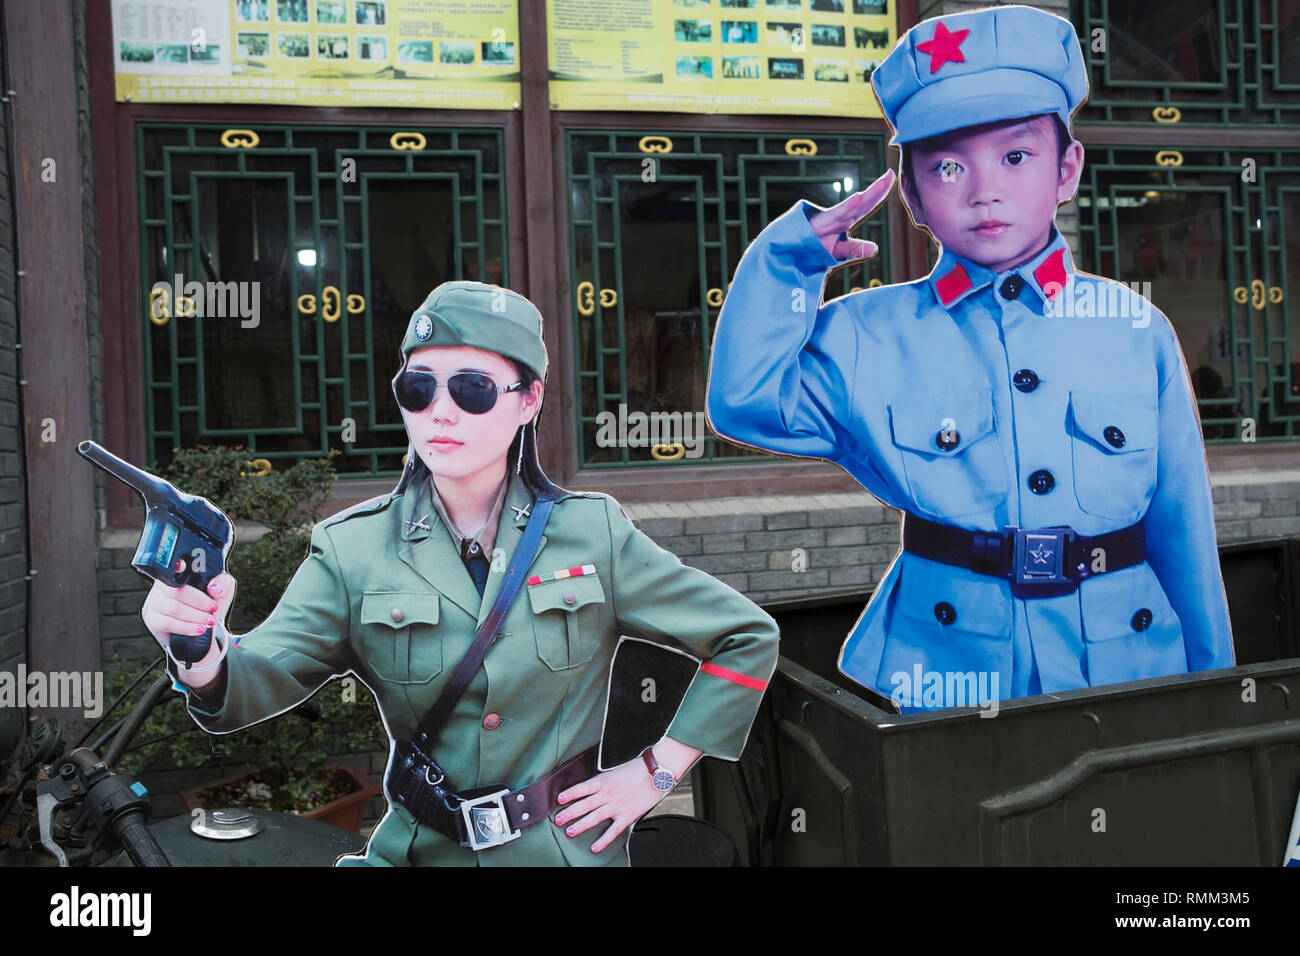 A poster featuring a Kuomintang female official and a child soldier of CCP Red Army in Xiangshan Film Studio in Xiangshan, Zhejiang, China. - Stock Image